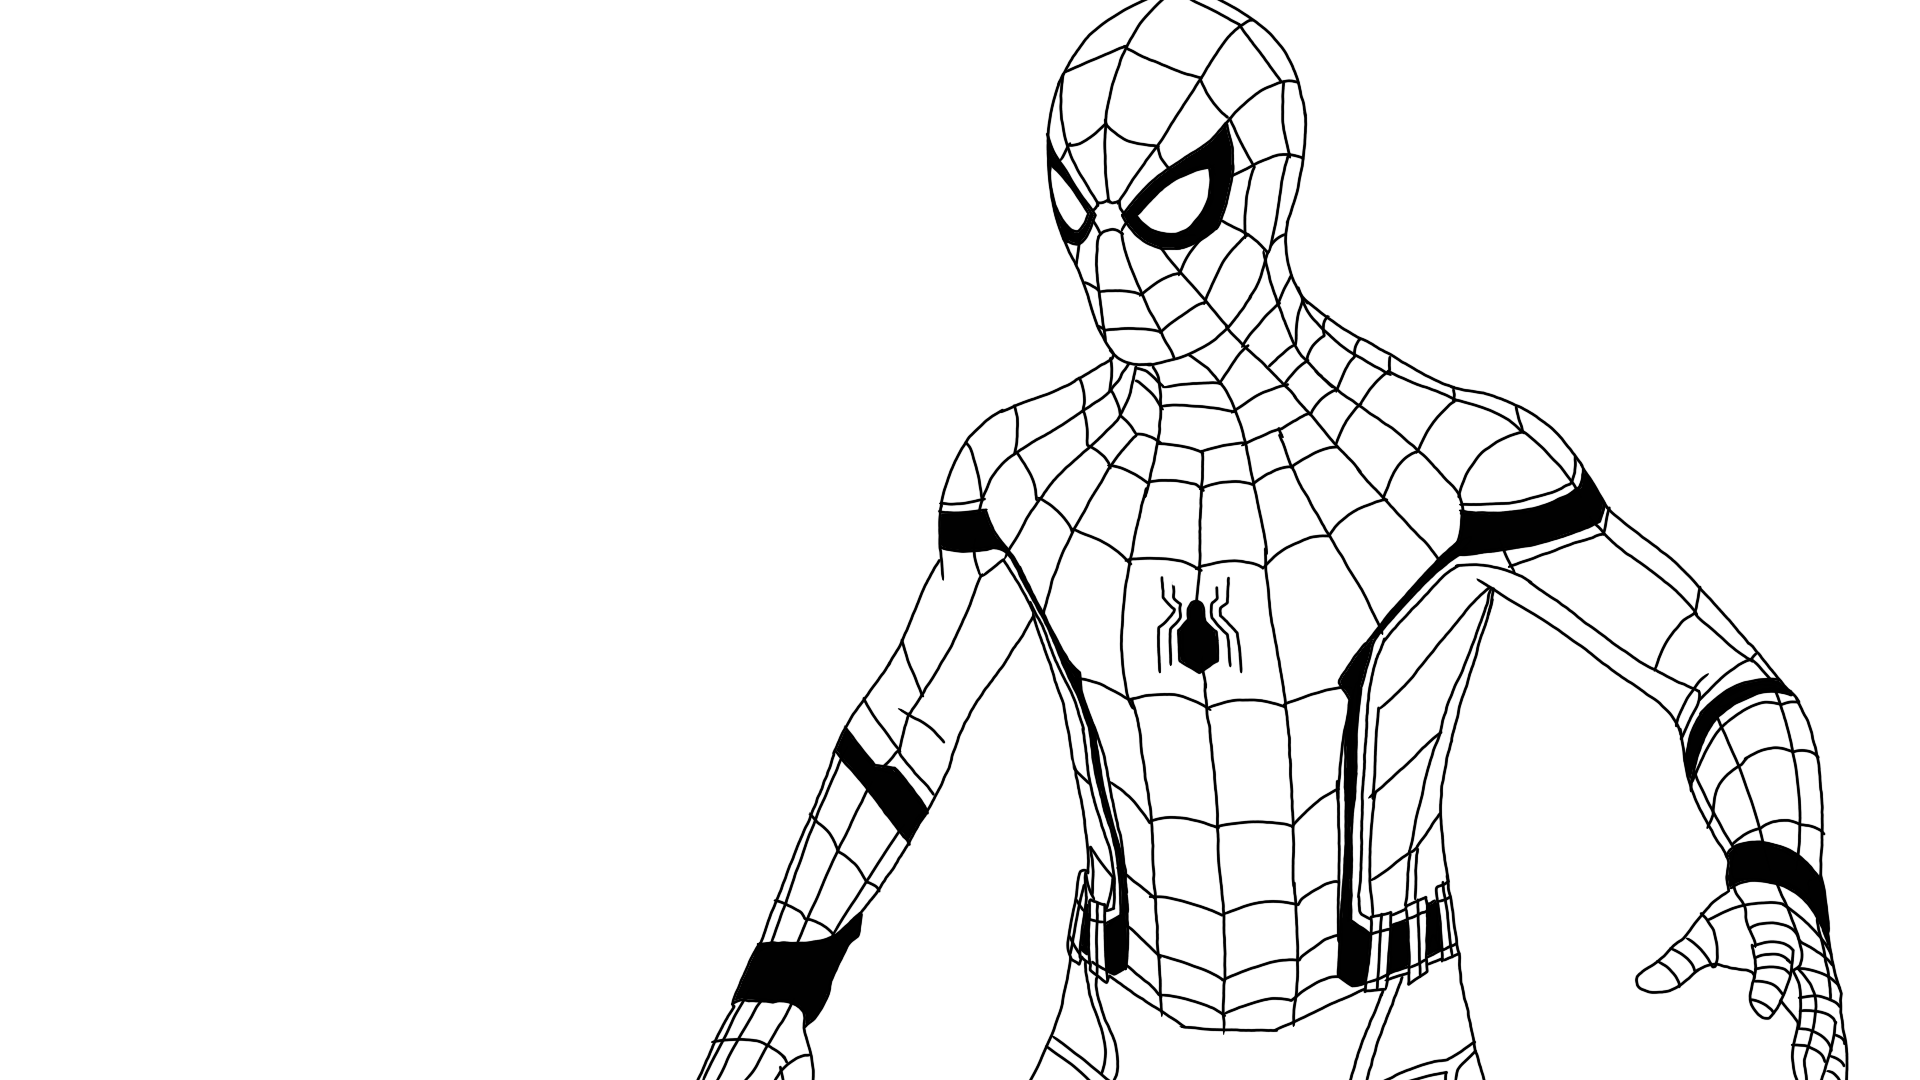 spider man stealth suit coloring page spider man superhero coloring pages page stealth suit spider man coloring